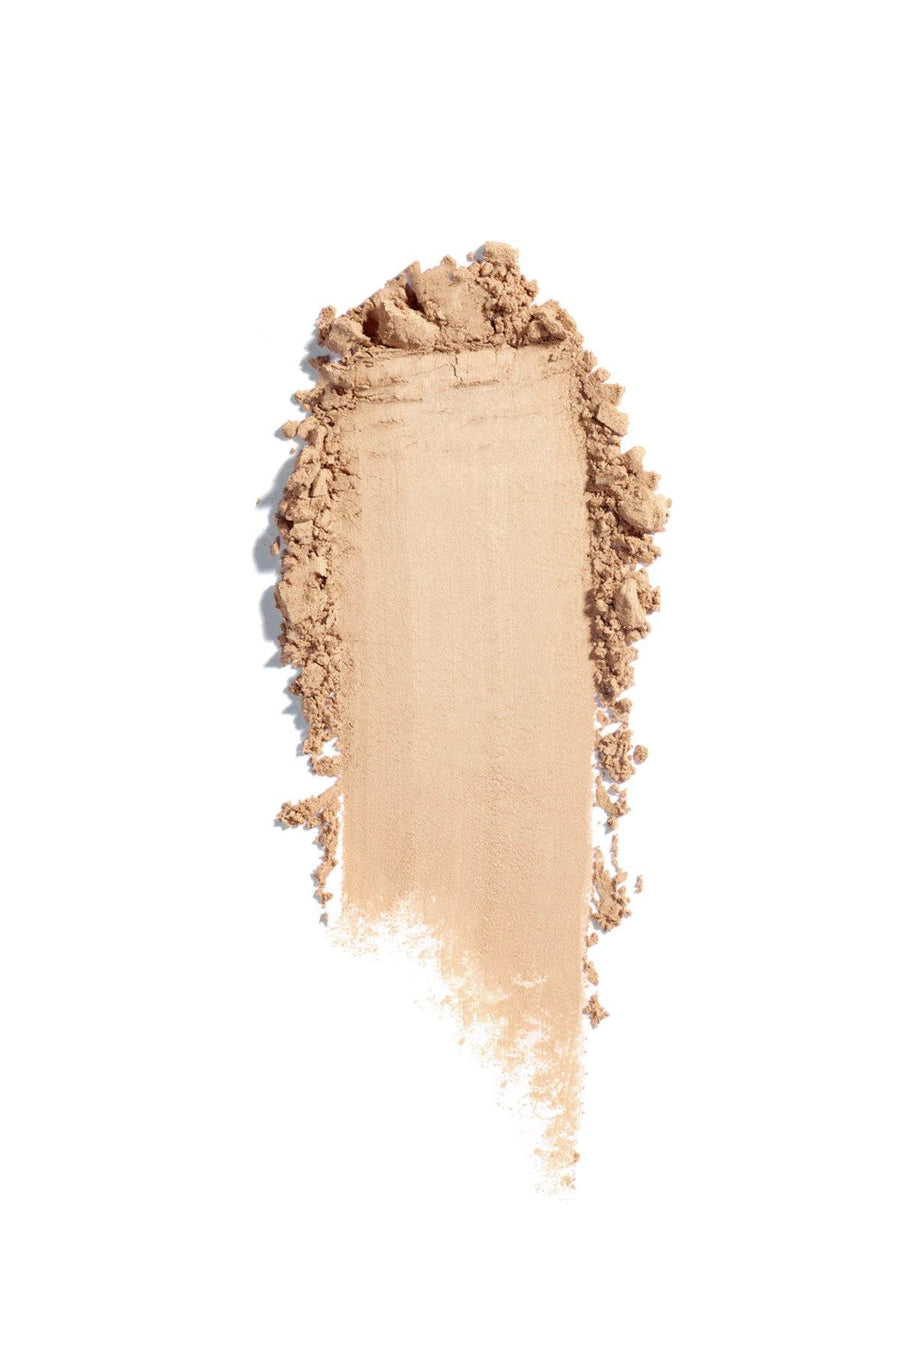 Mineral SPF 15 Foundation #3 - Suede - Blend Mineral Cosmetics